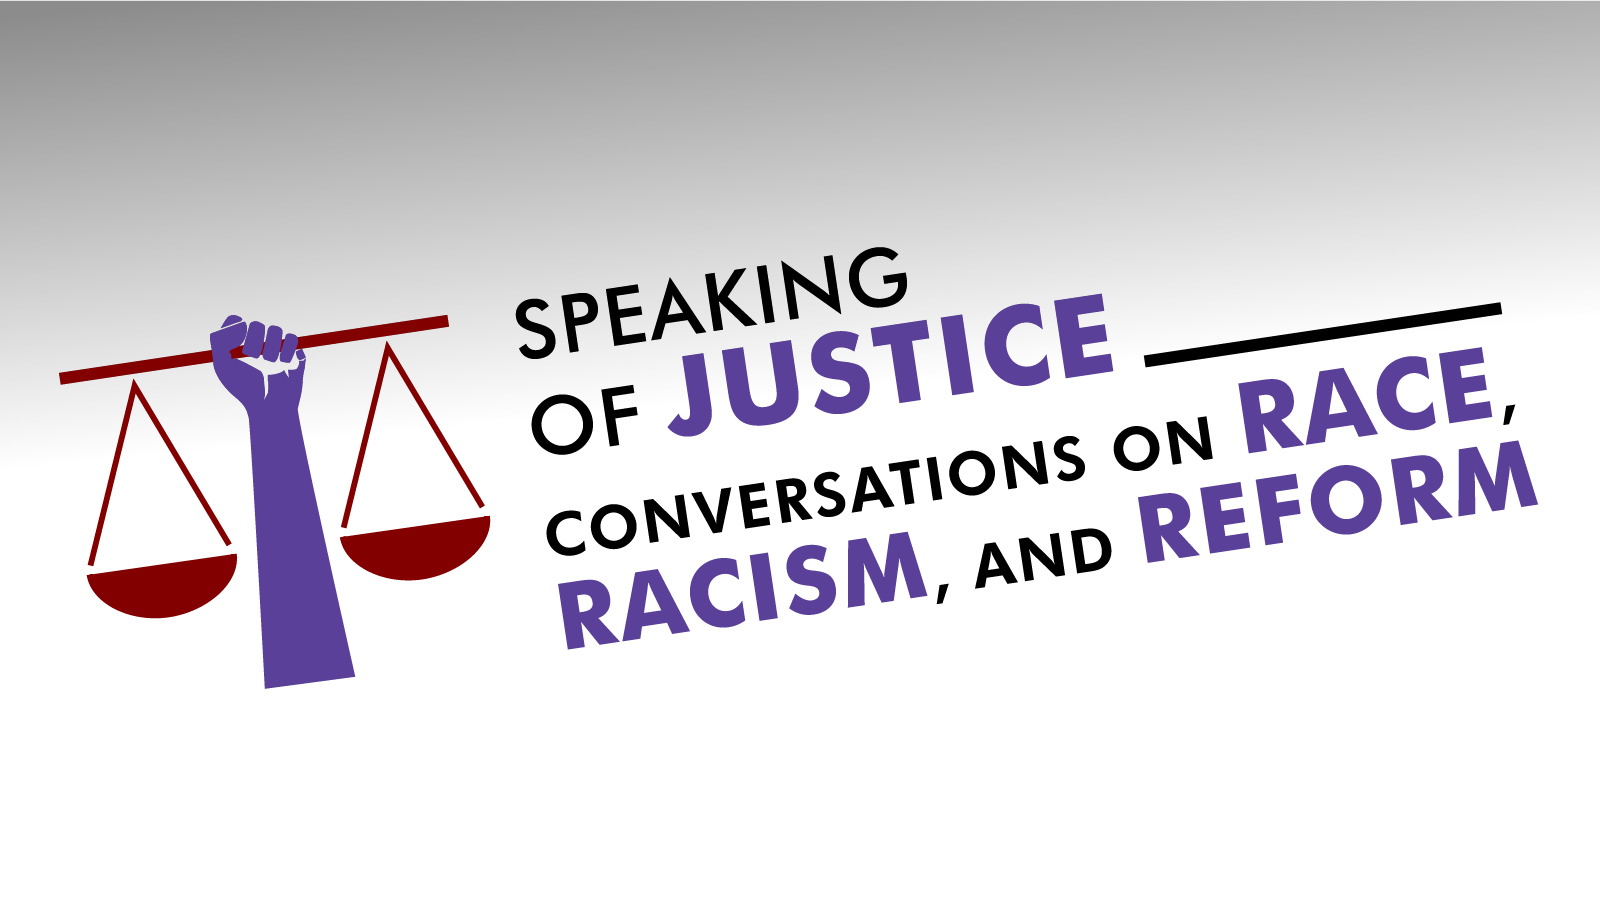 Speaking of Justice Conversations on Race, Racism, and Reform